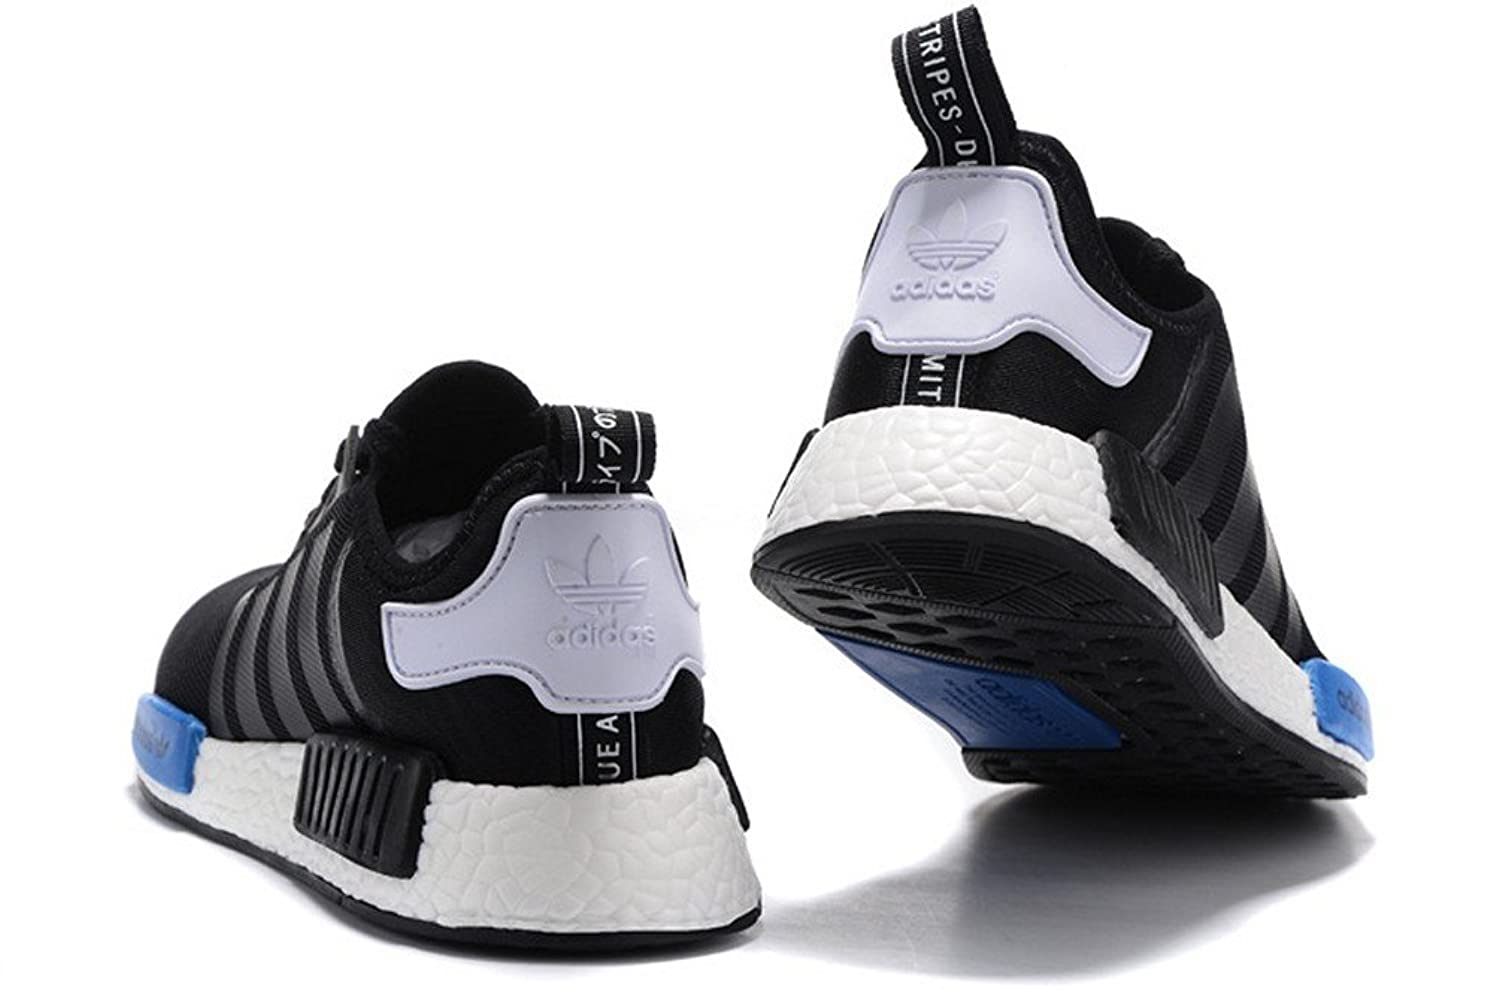 422f6f5152ea4 ... where to buy worldwide online retailer list be3f5 75fb7 adidas mens  originals nmd r1 shoes blue